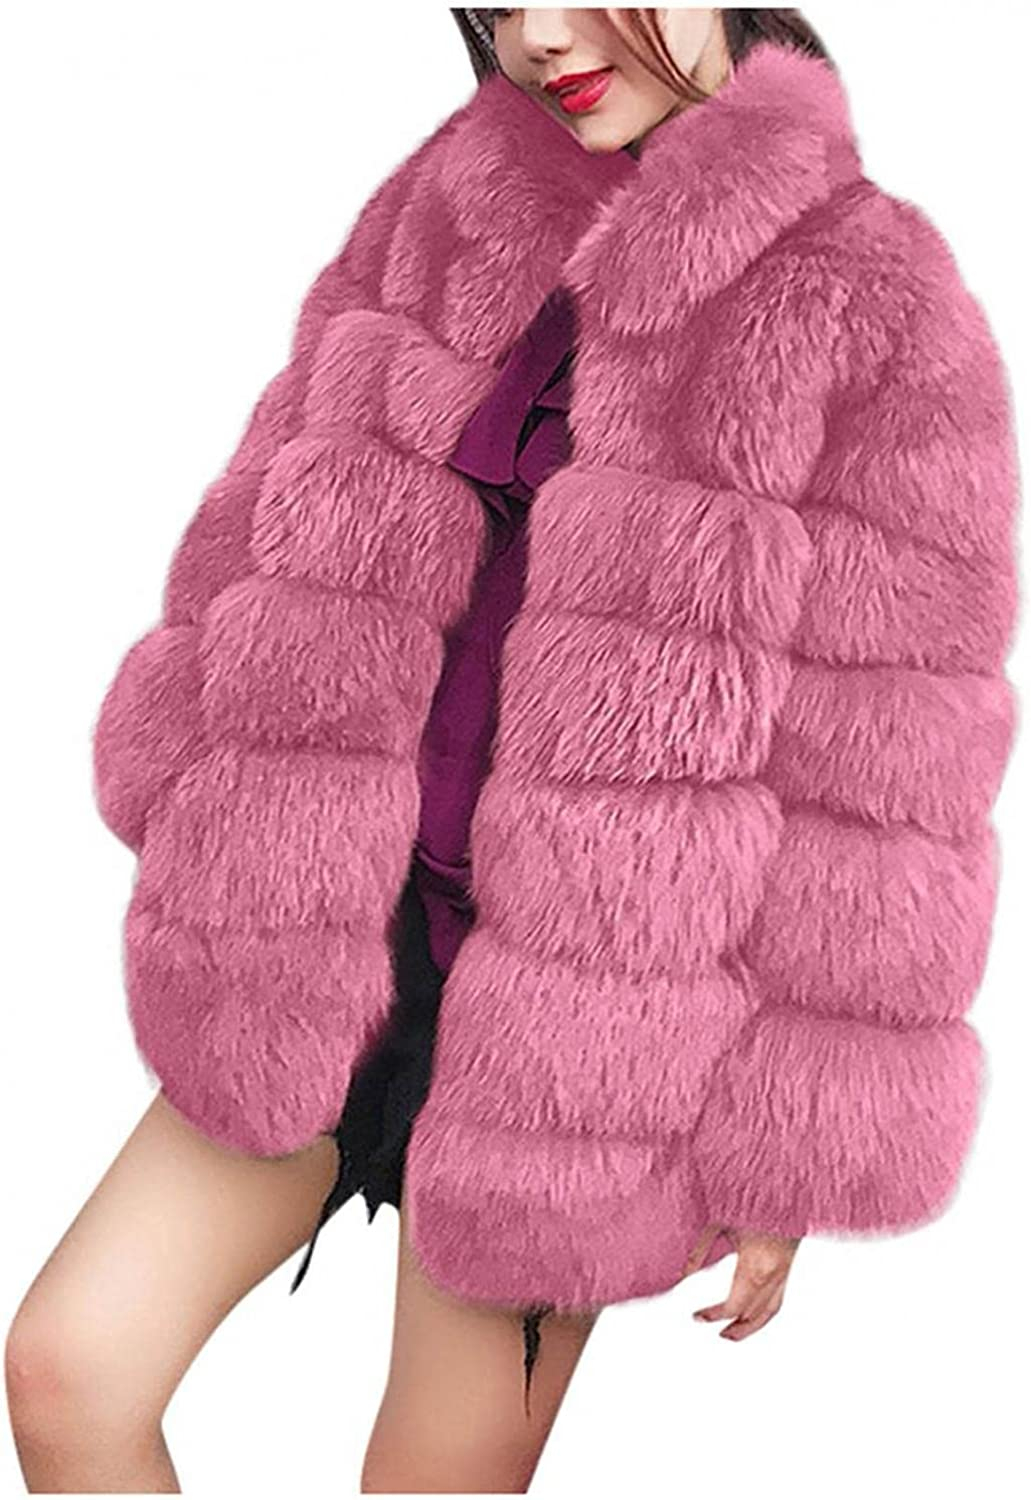 Women's Long Sleeve Plush Faux Fur Thicken Jacket New Casual Winter Warm Open Front Stand Collar Coat Outerwear